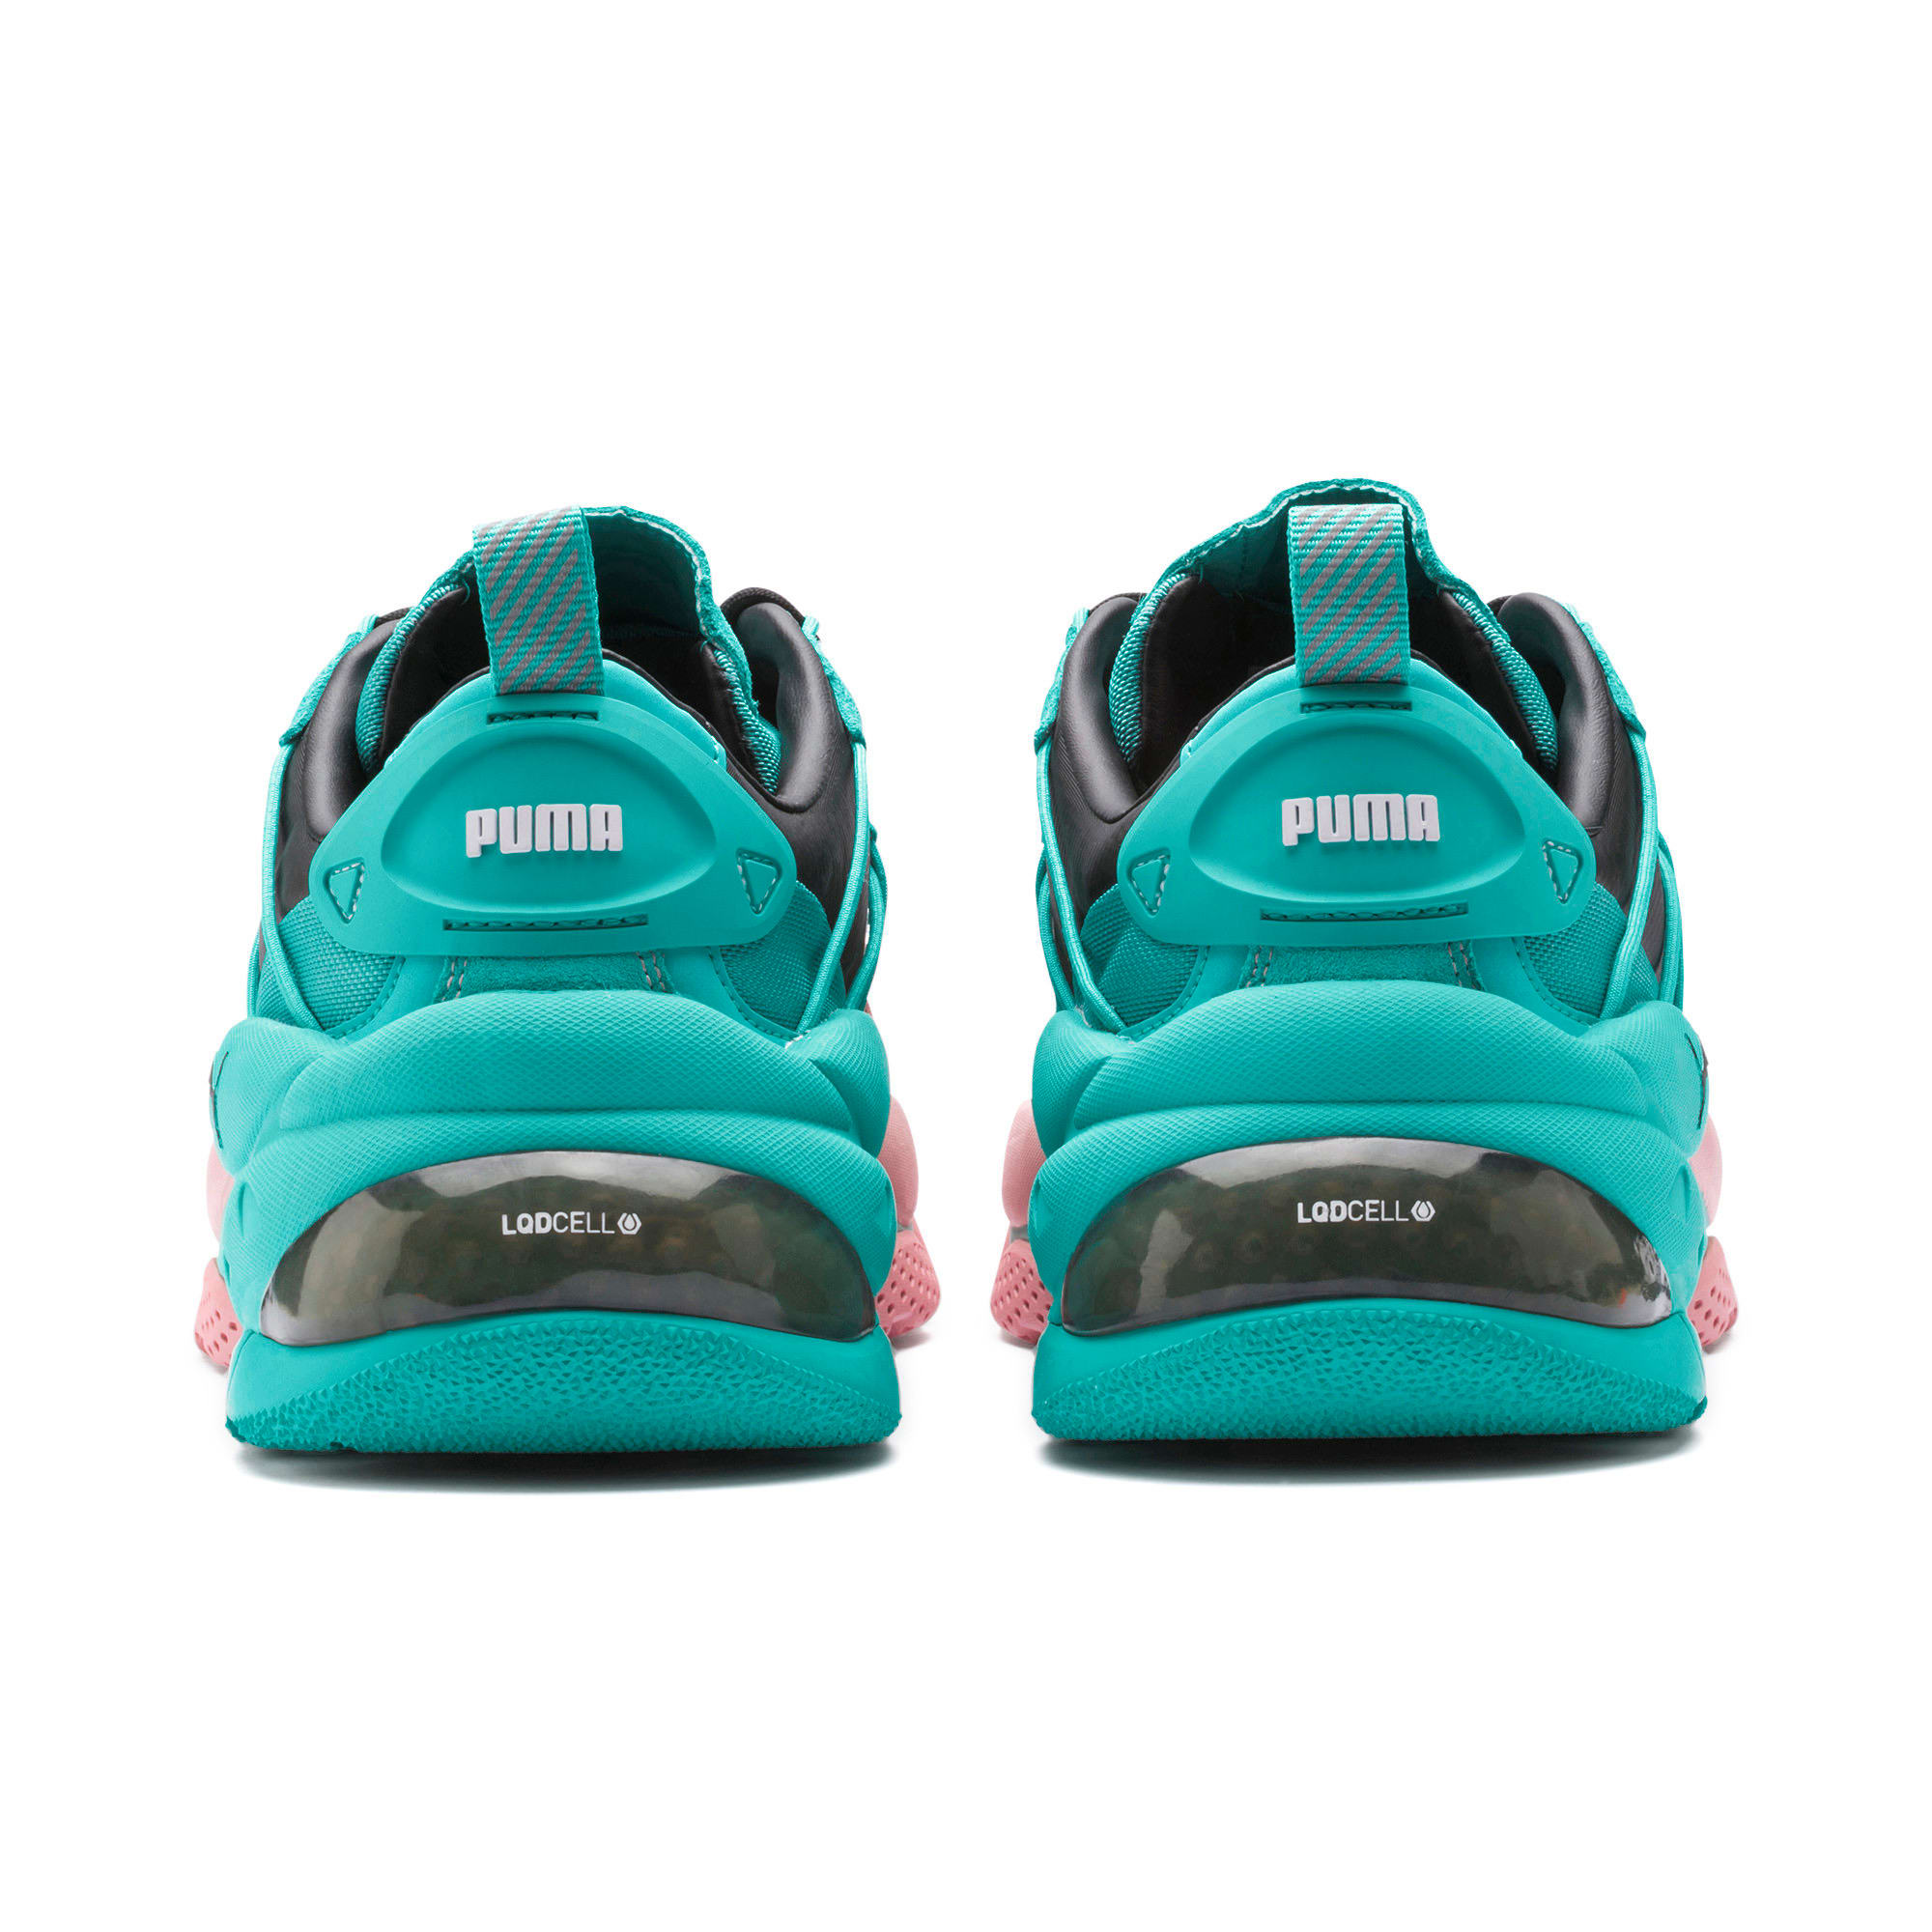 Thumbnail 3 of LQDCELL Omega Manga Cult Trainers, Bridal Rose-Blue Turquoise, medium-IND